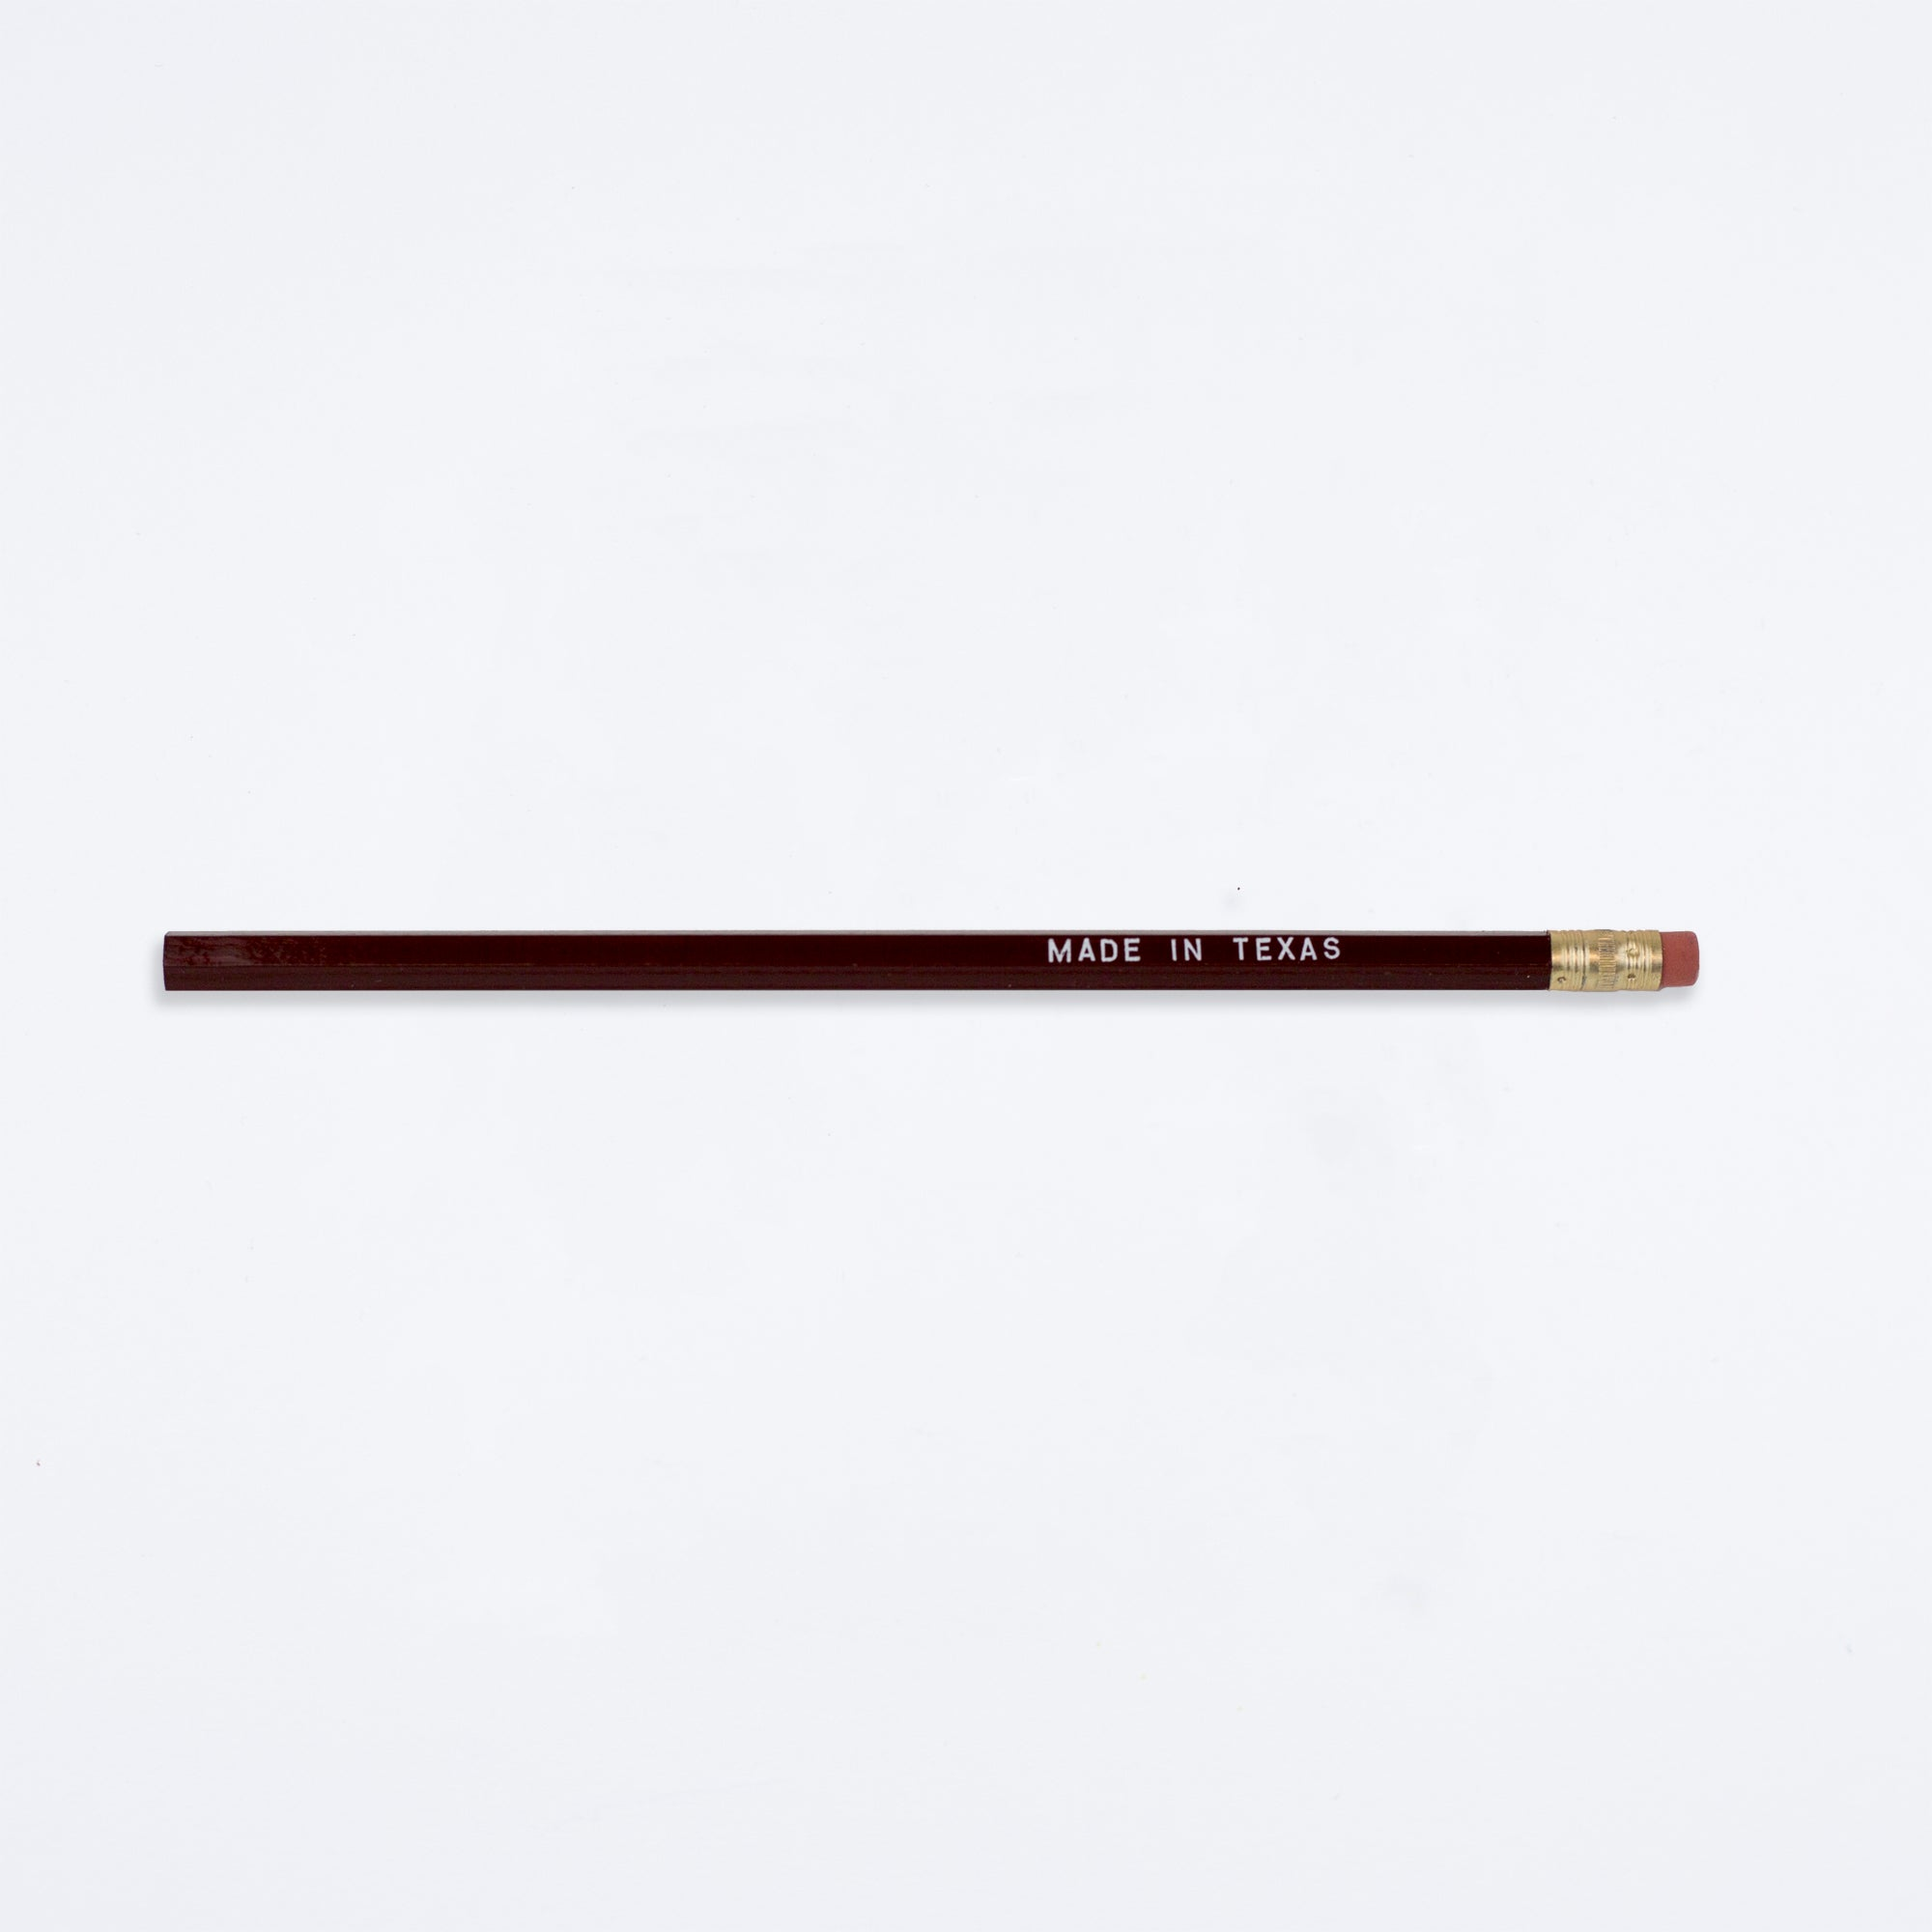 Made in Texas Pencil